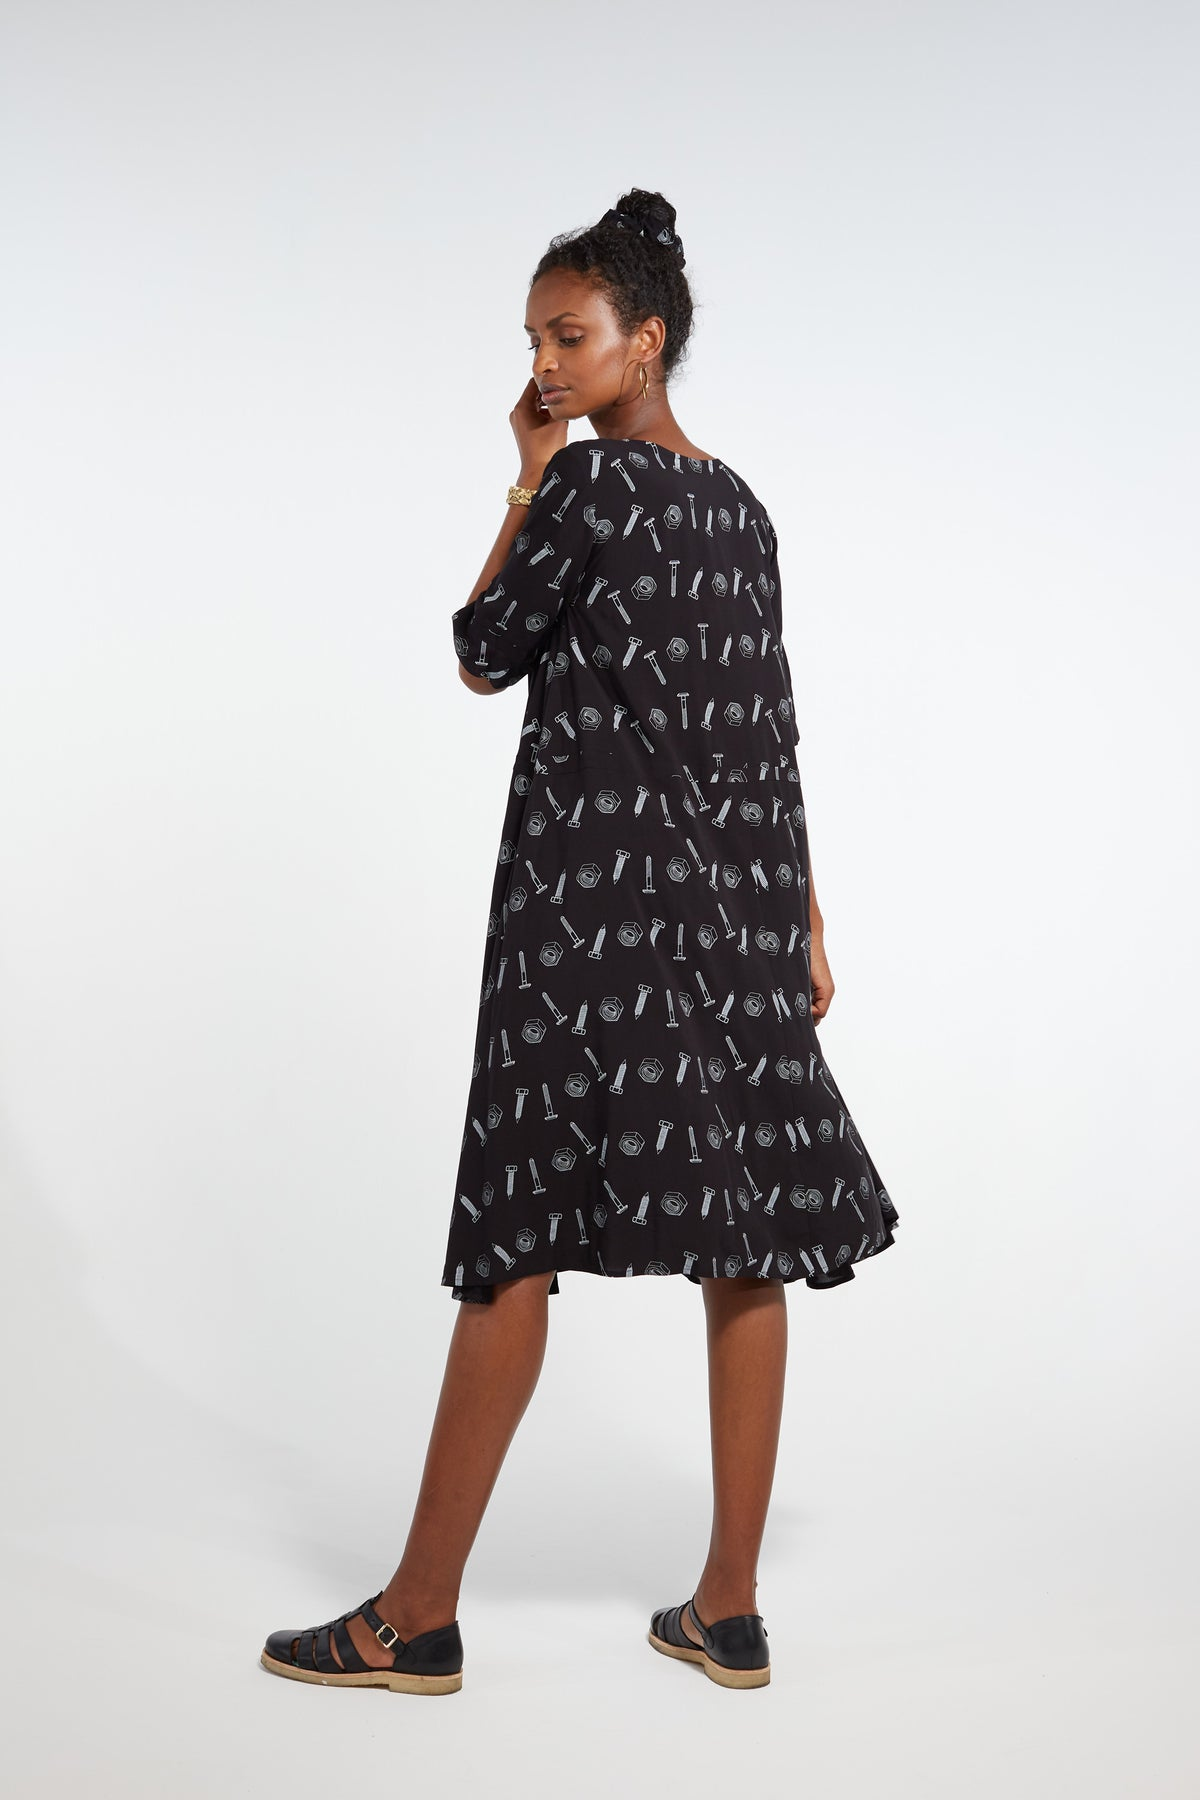 Java dress in black bolts print